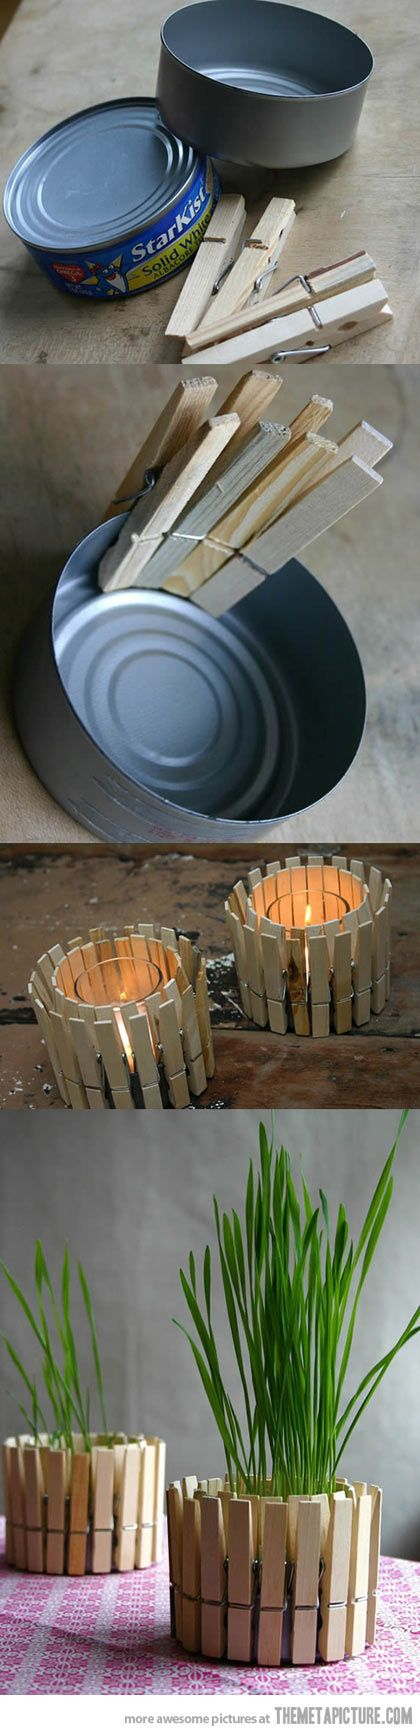 Candle Holders Made With Tin Cans and Clothes Pins.